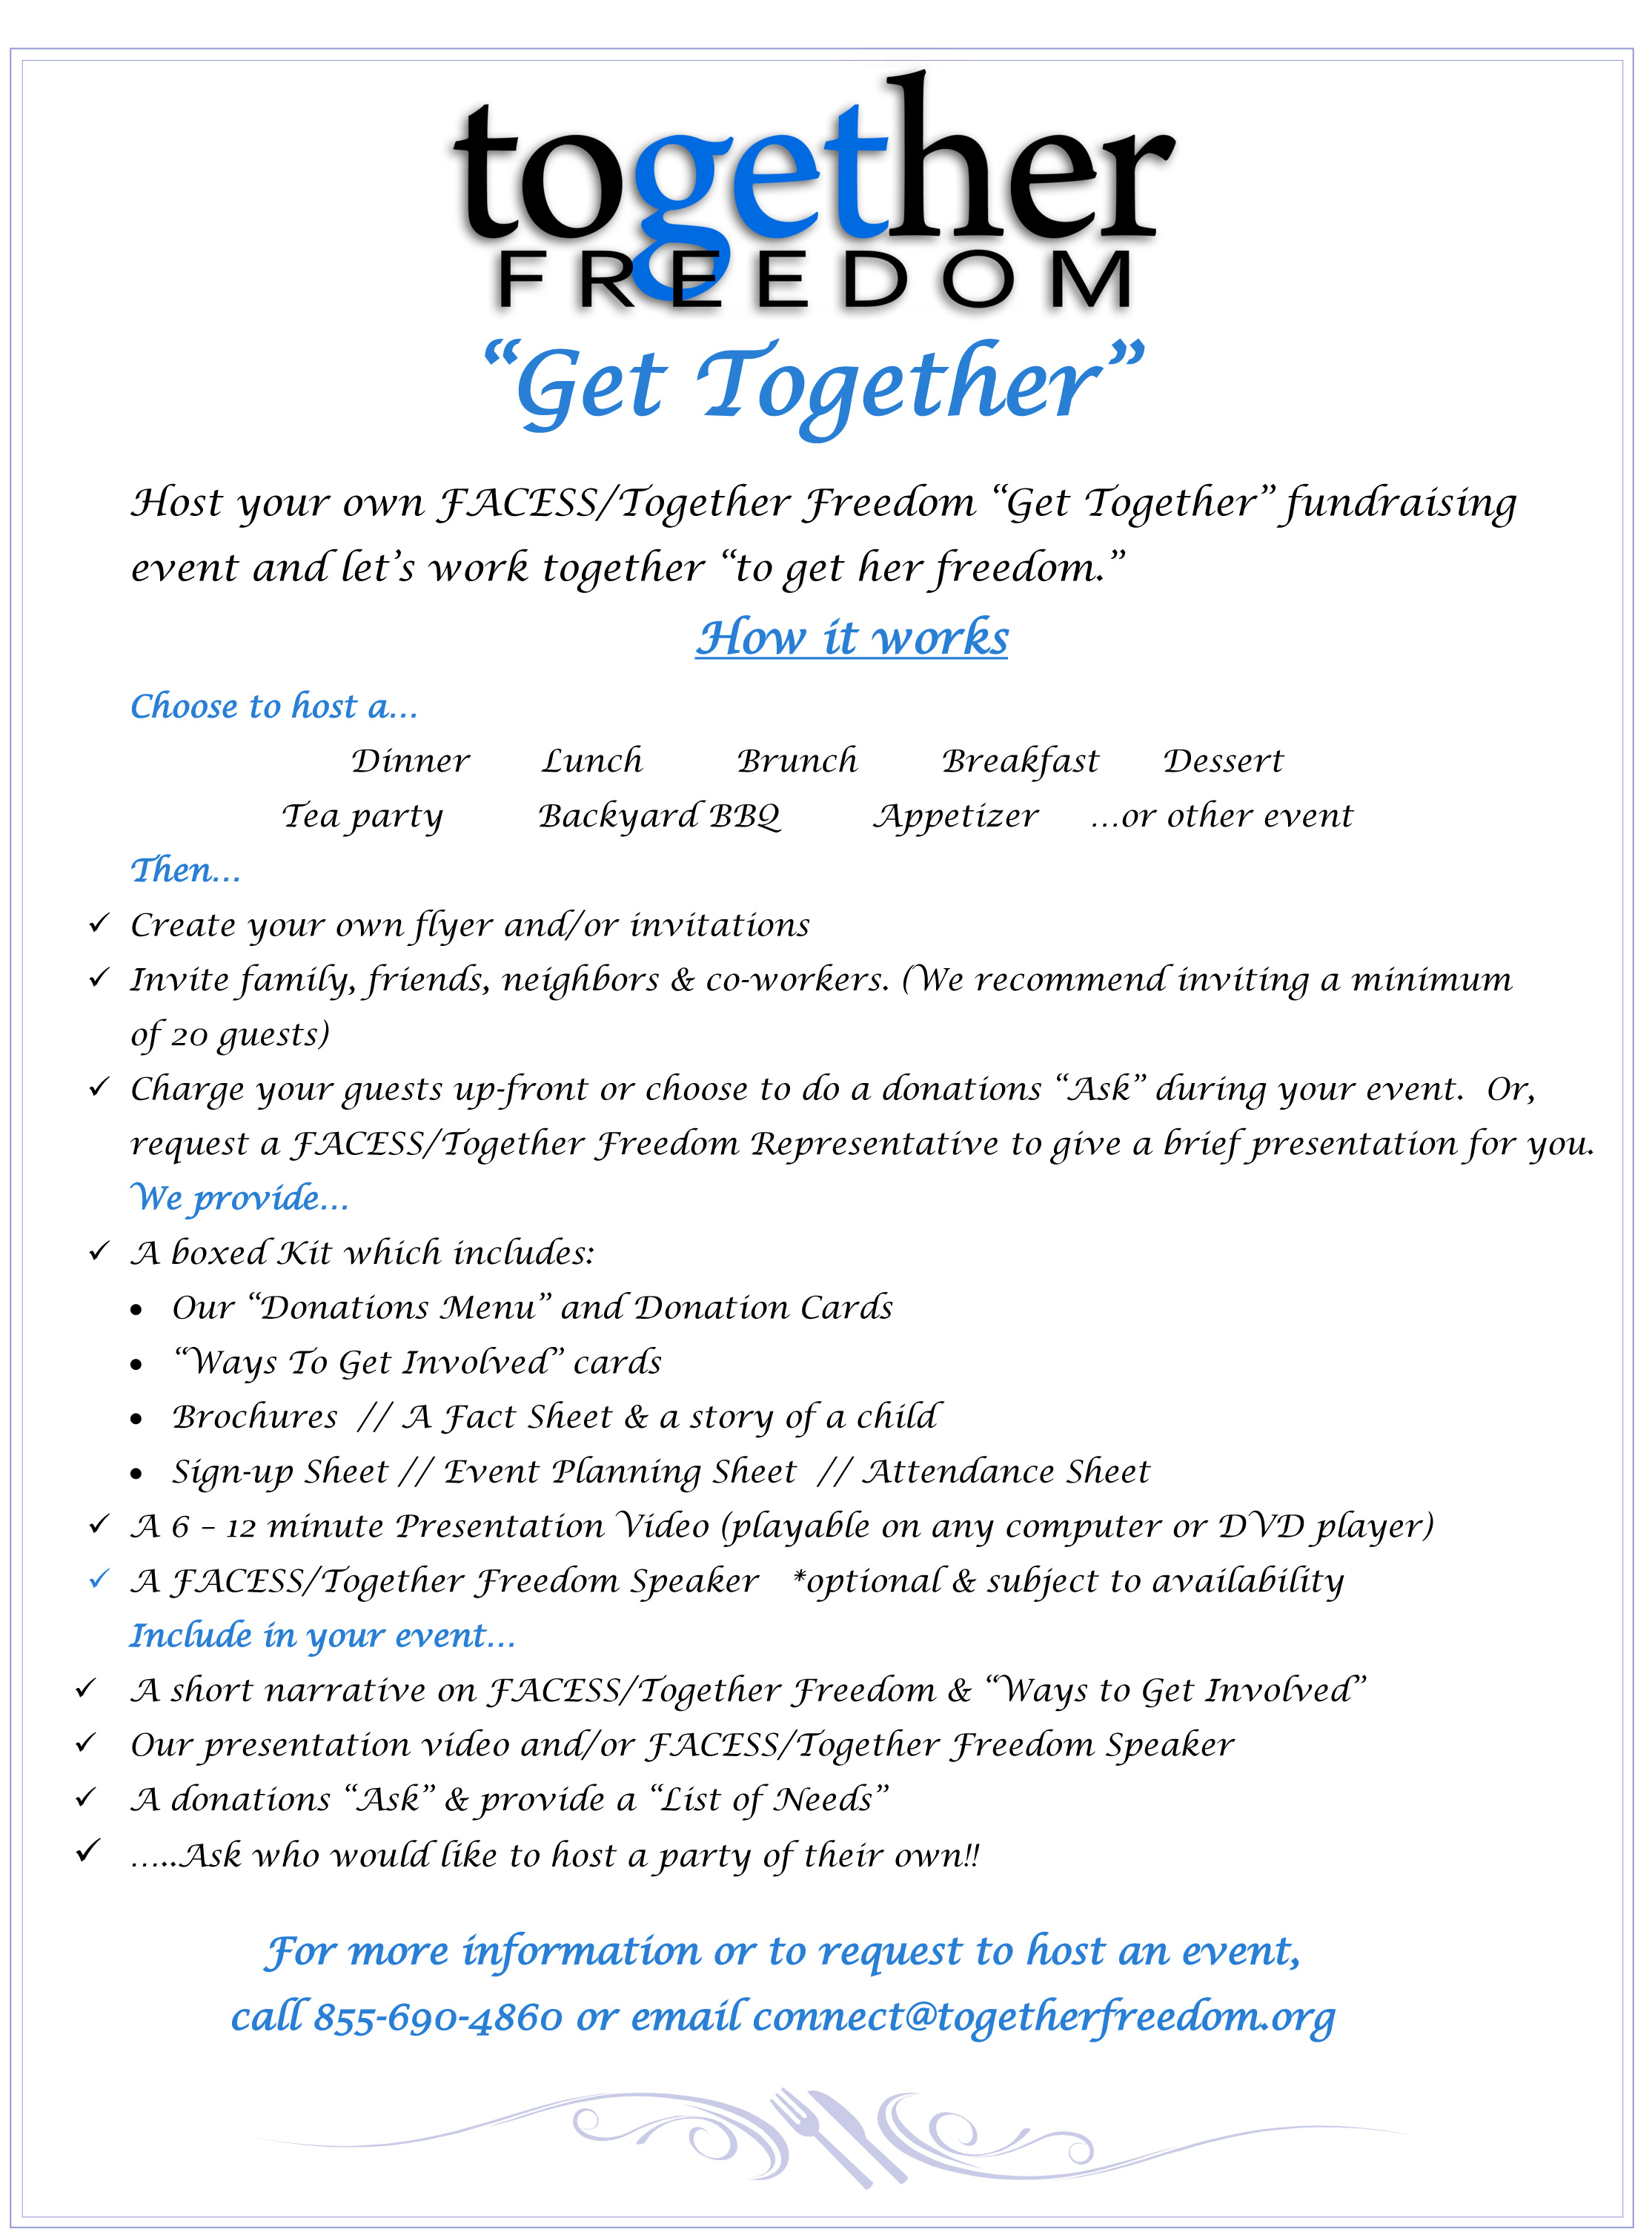 Host a Together Freedom Get Together Party